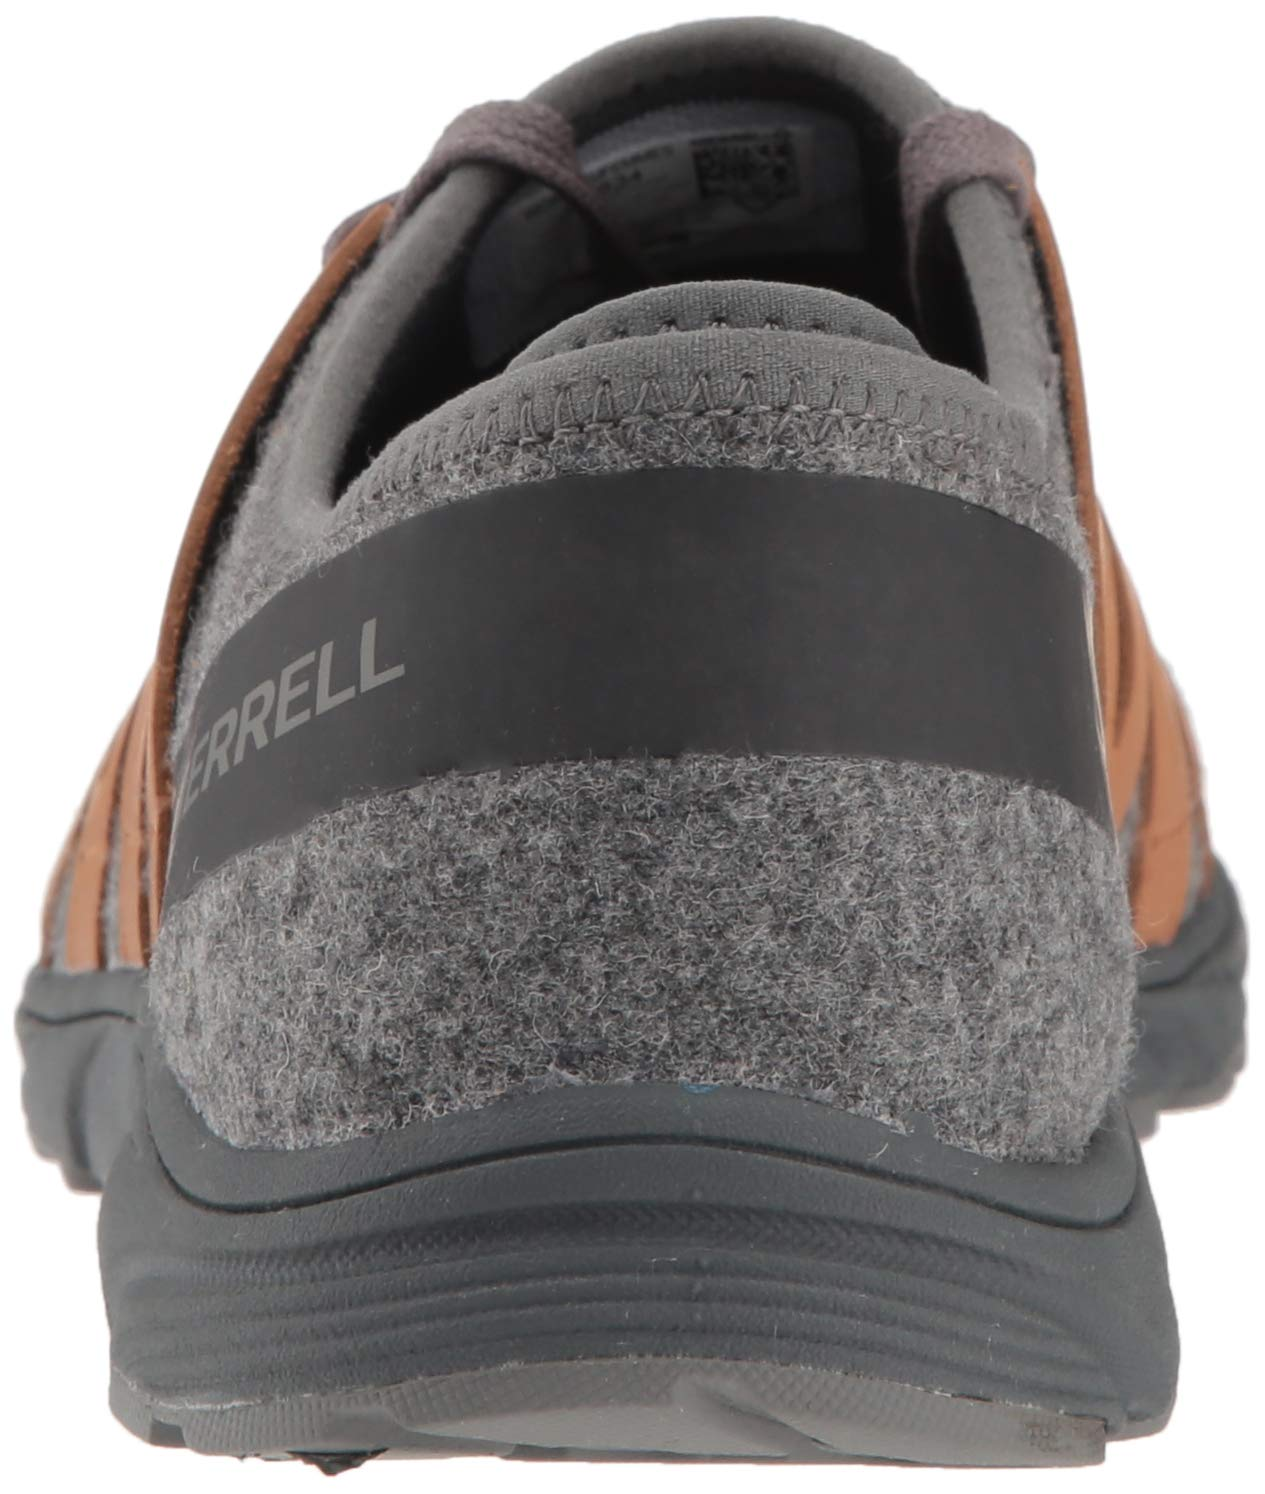 Merrell Women's Riveter Wool Sneaker Charcoal 11 M US by Merrell (Image #2)